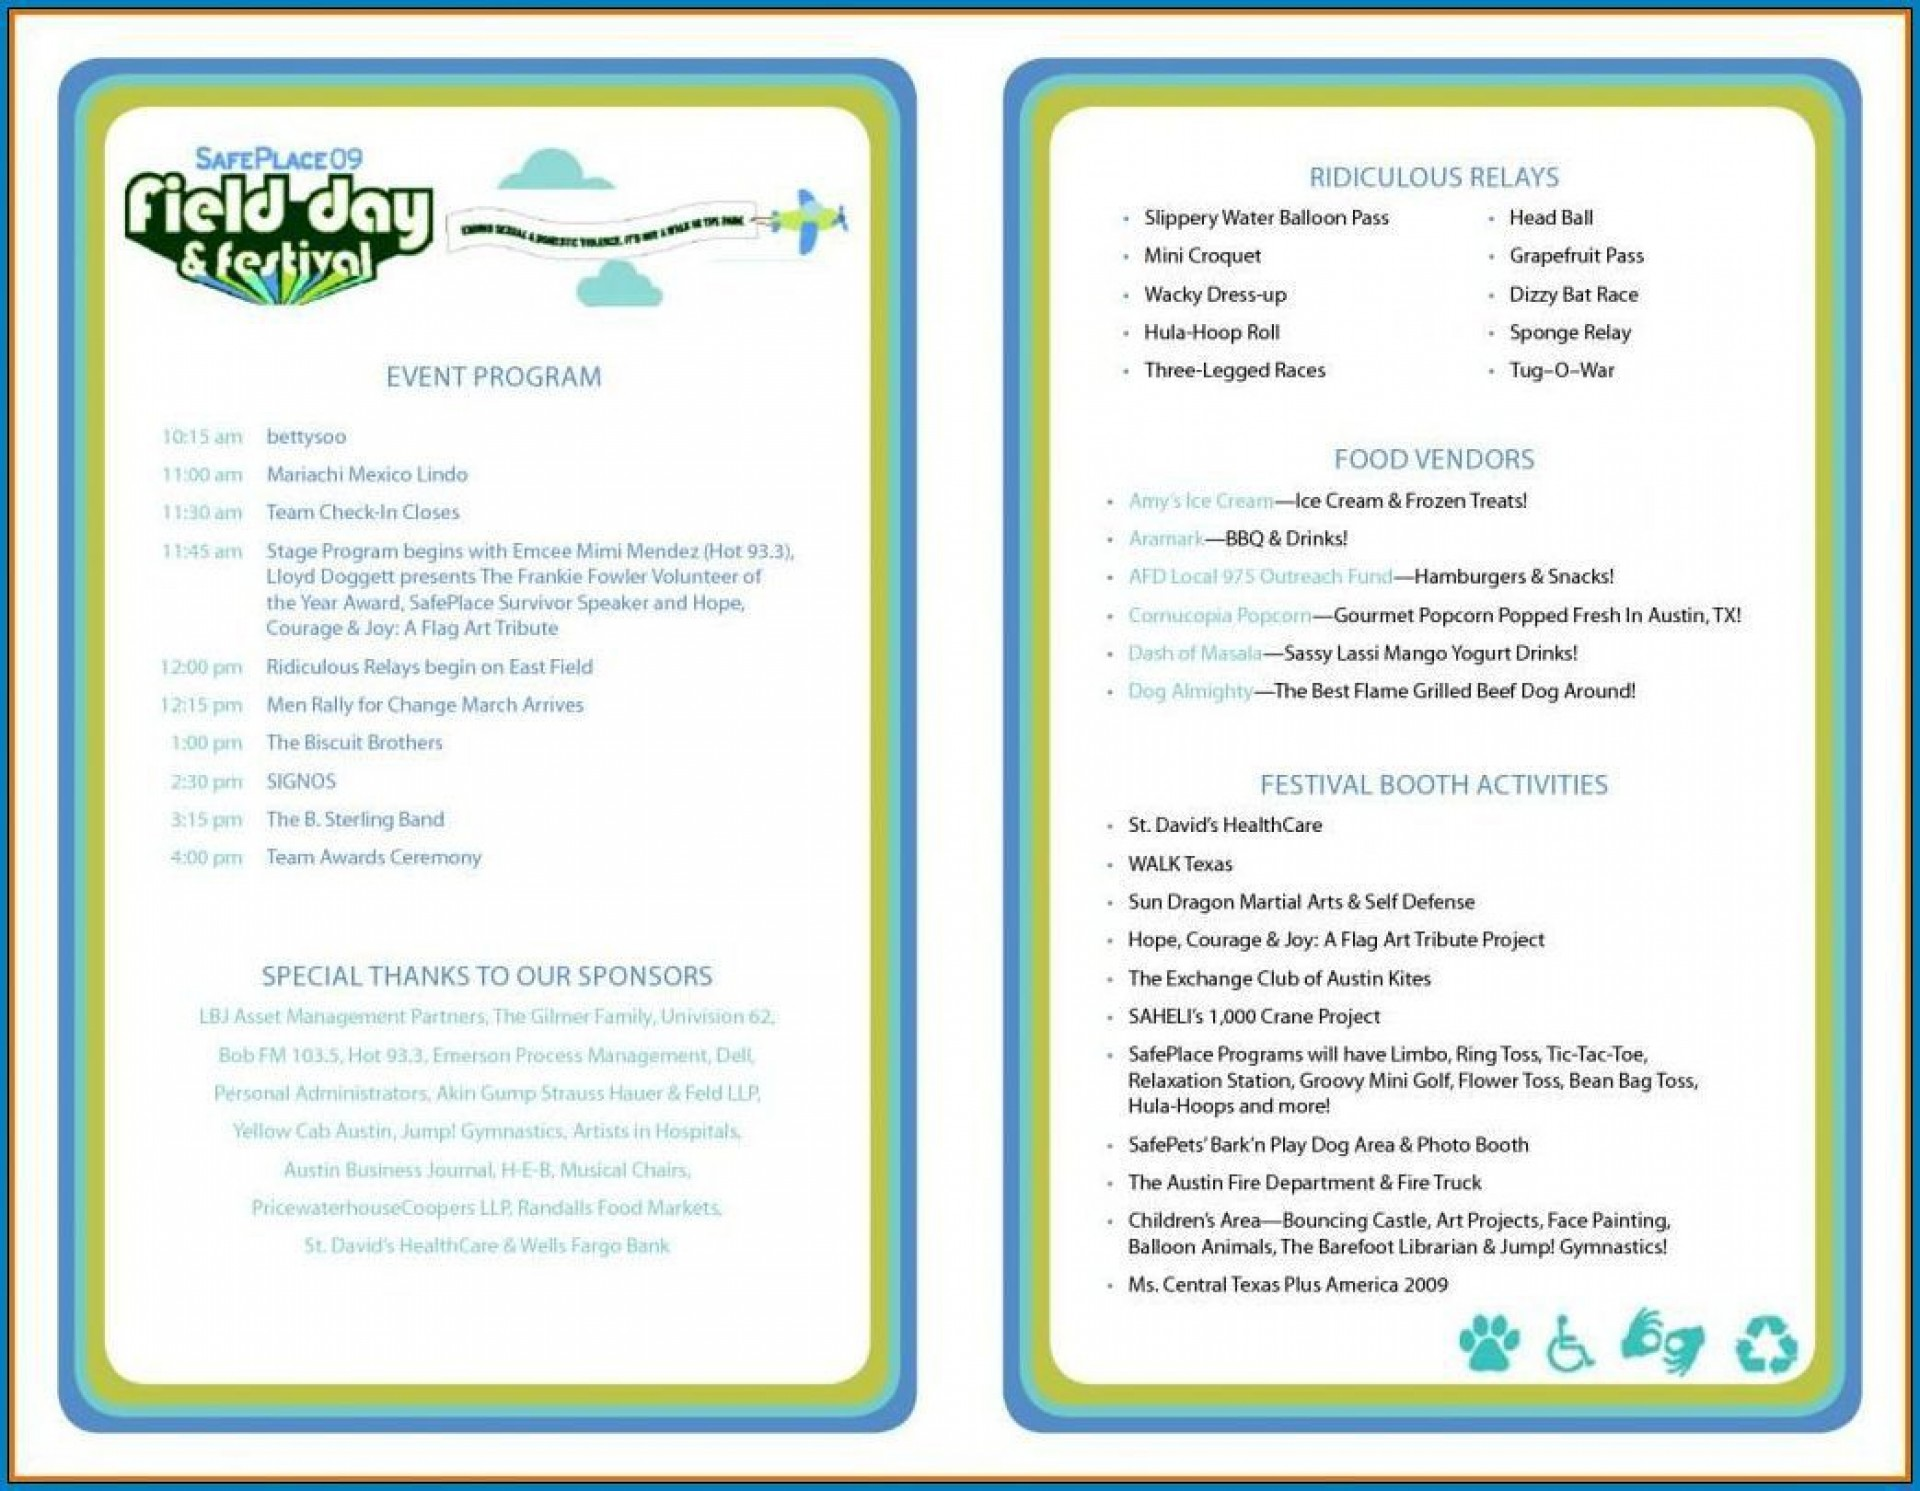 007 Shocking Free Event Program Template Example  Schedule Psd Word1920